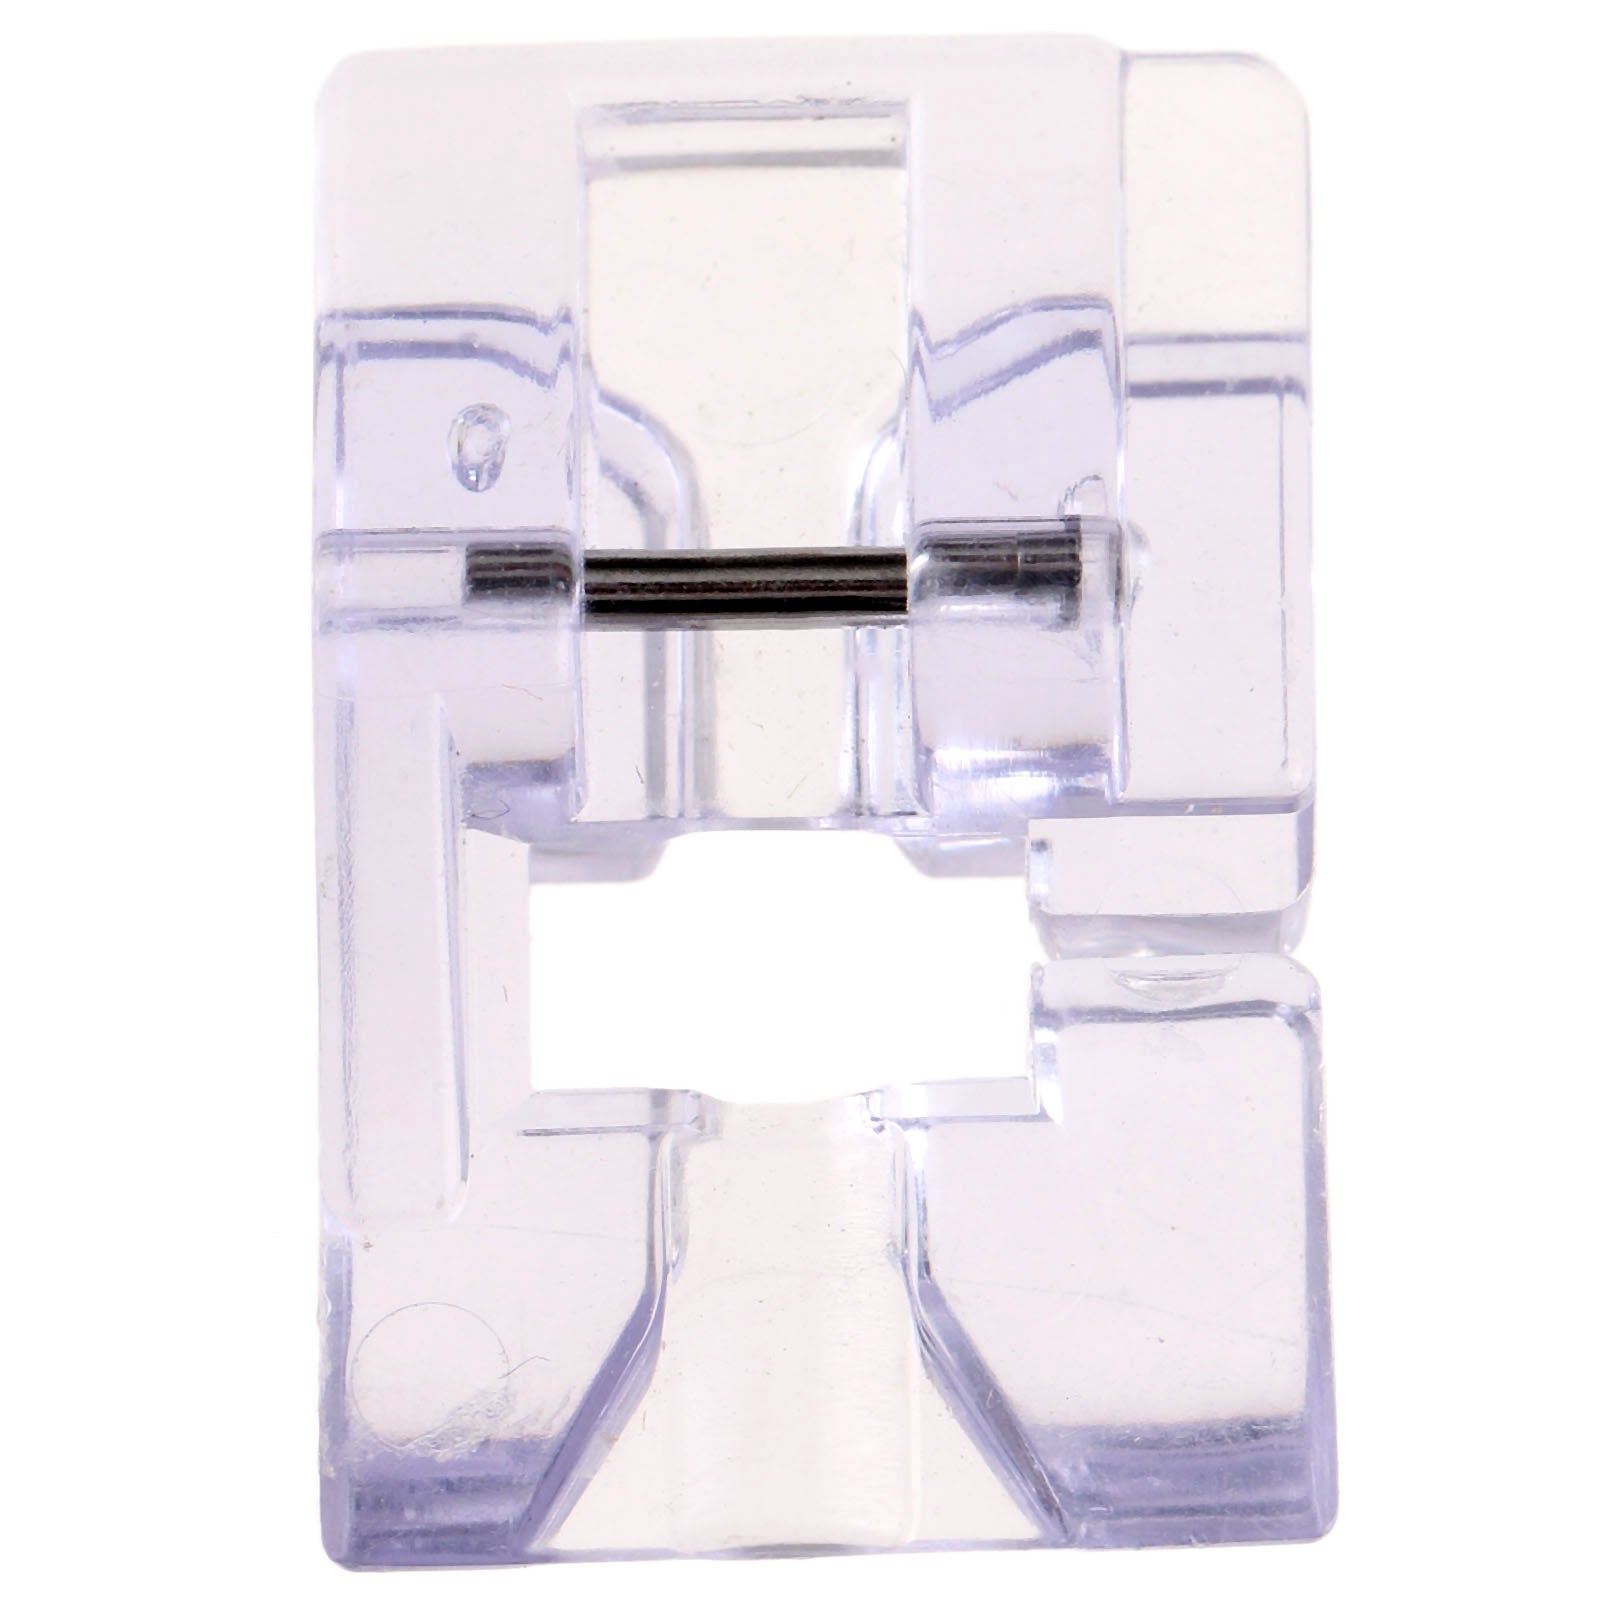 FEEL THE BEAD Presser Foot